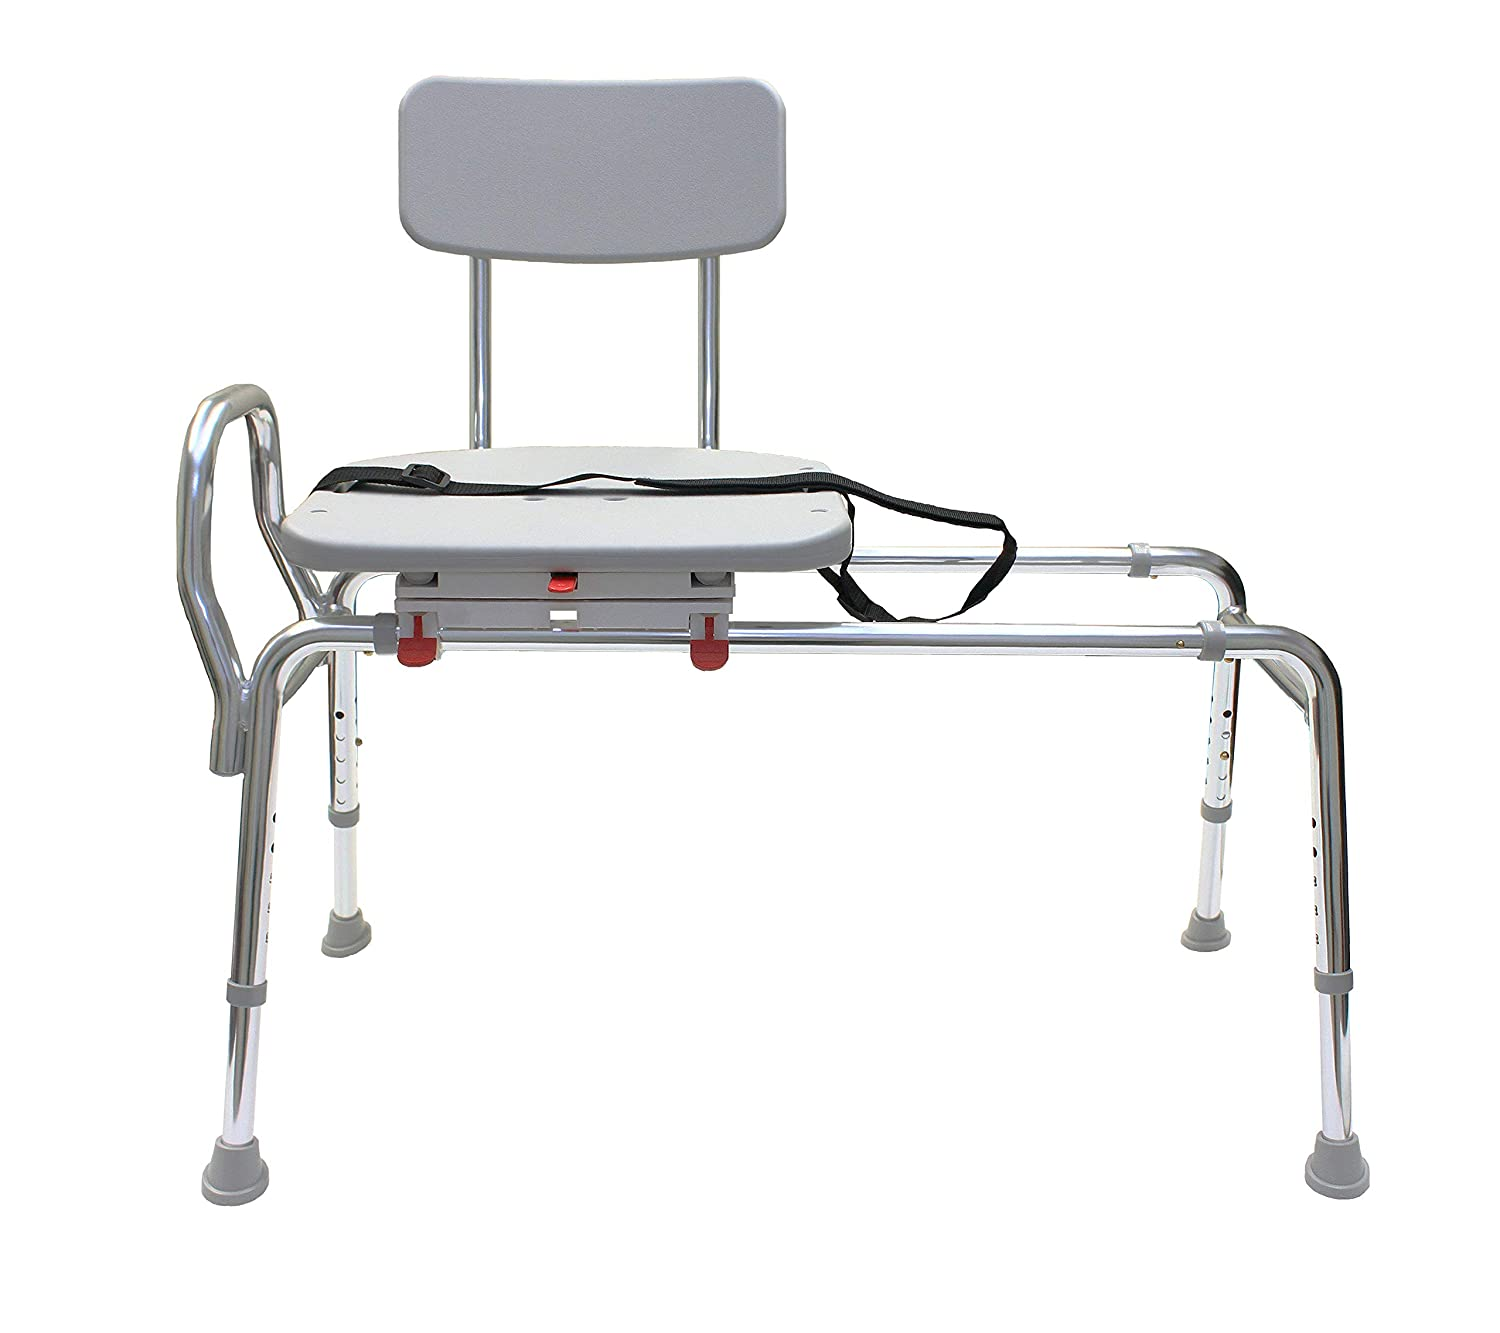 Awe Inspiring Swiveling And Sliding Bathtub Transfer Bench And Shower Chair Reg 77662 Swiveling And Sliding System Multiple Safety Features Tool Less Machost Co Dining Chair Design Ideas Machostcouk